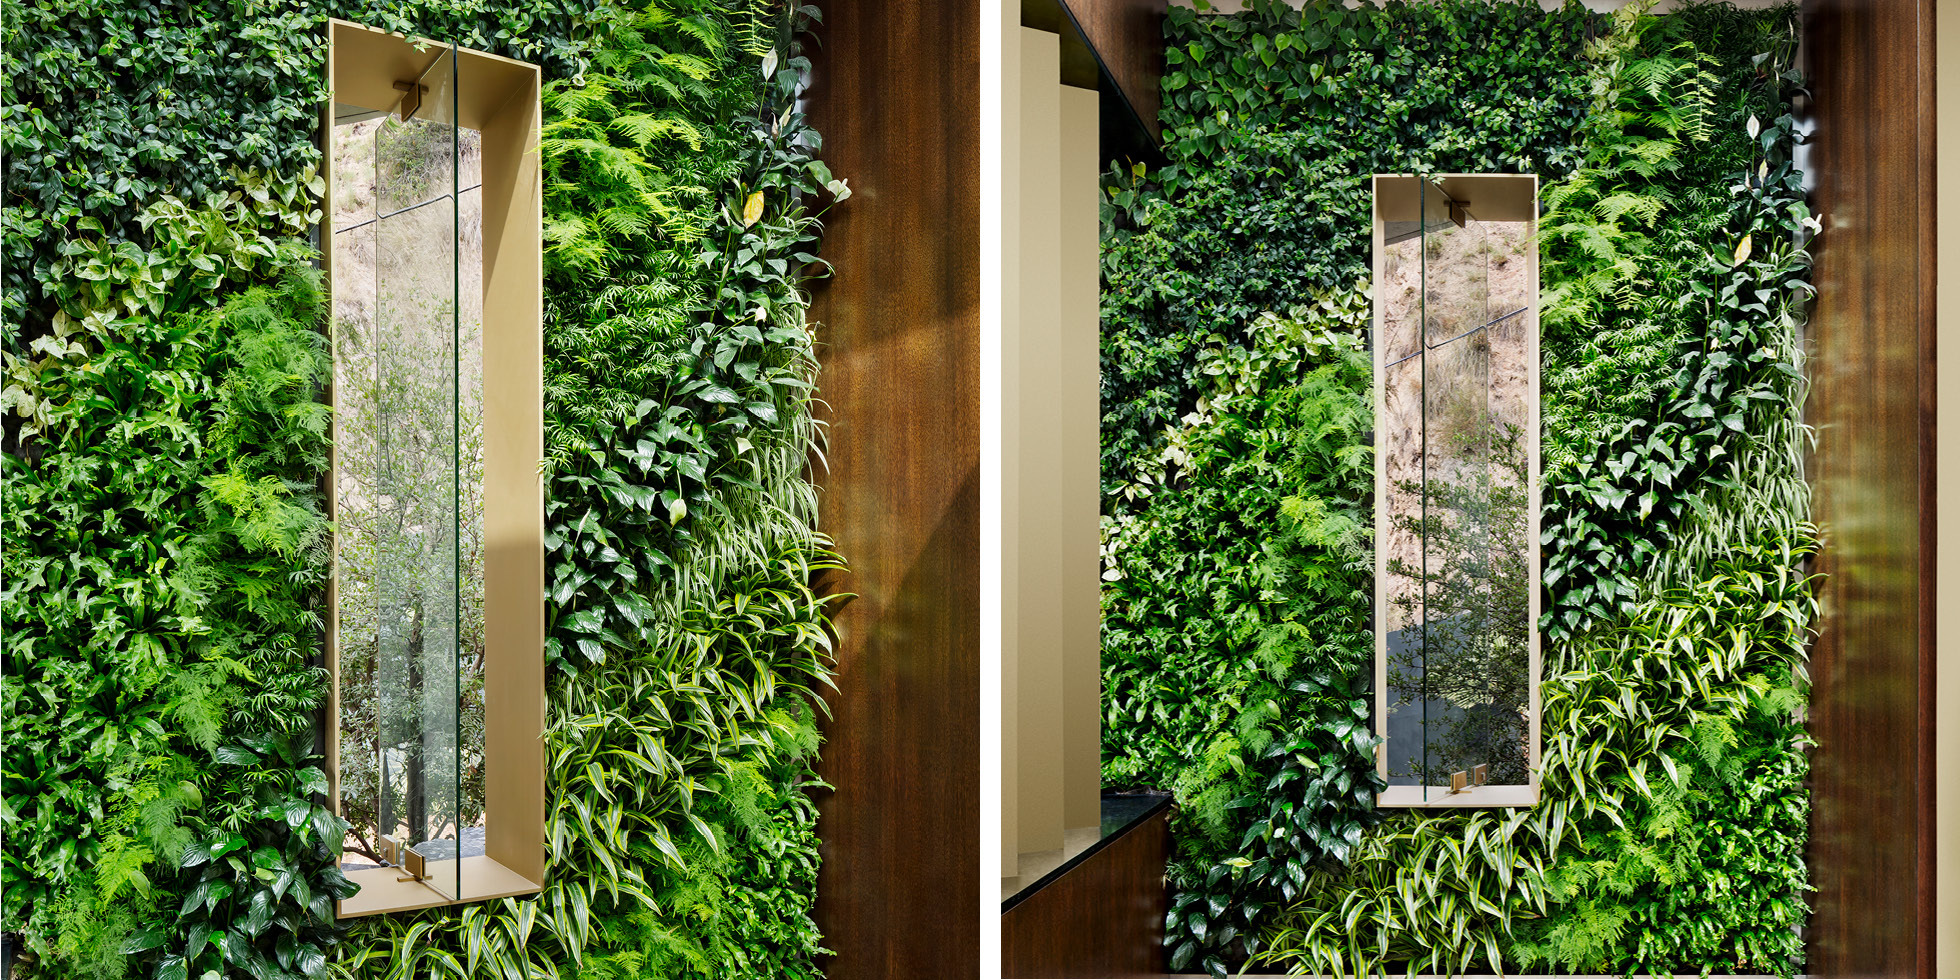 Los Angeles Residence Living Wall by Habitat Horticulture - View 2